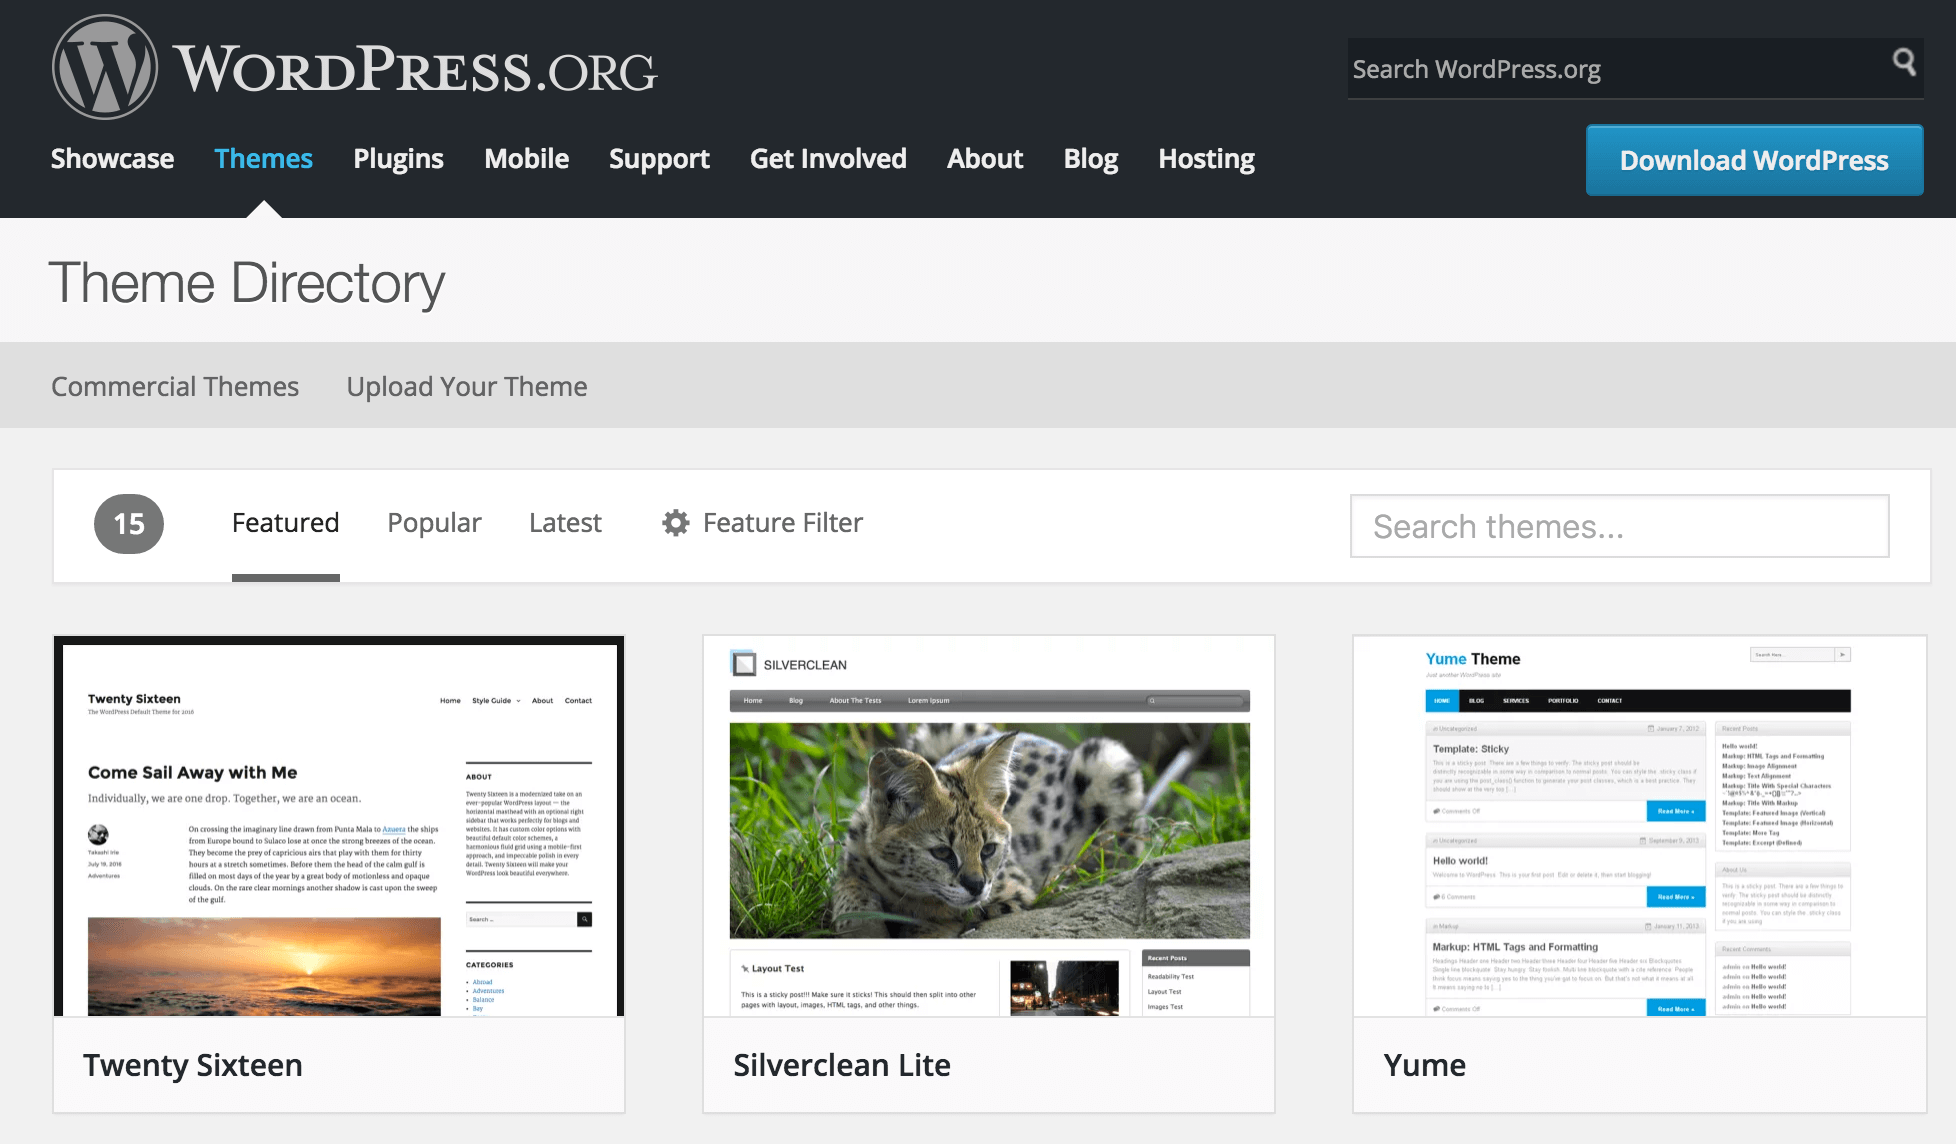 The WordPress.org Theme Directory